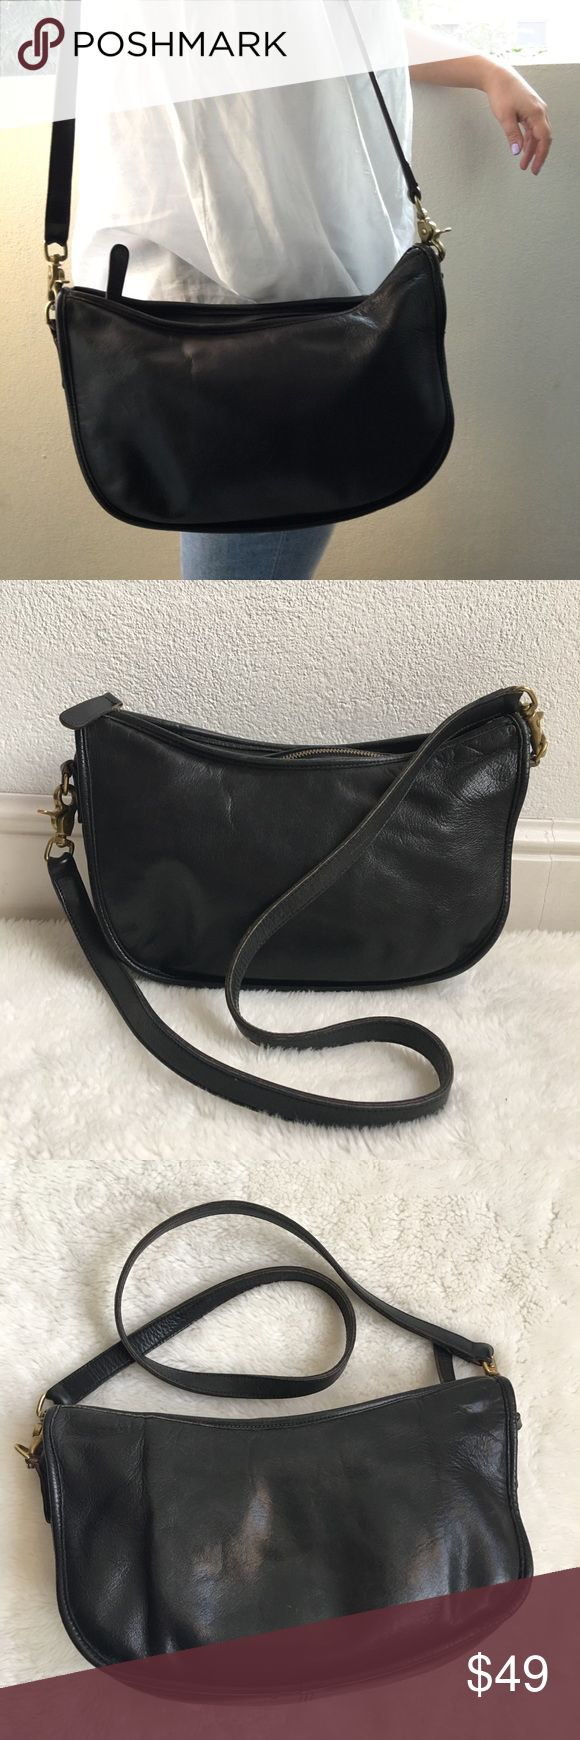 "Vintage Coach Legacy Black Leather Shoulder Bag Pre-owned authentic Vintage Coach Legacy Black Leather Shoulder Bag. It measures 11.5x7"" inches. Strap is 38"" inches long. Made in USA. No. 0788-157. Bag has signs of wear and patina throughout due to its age. Please look at pictures for better reference. Happy Shopping! Coach Bags Shoulder Bags"